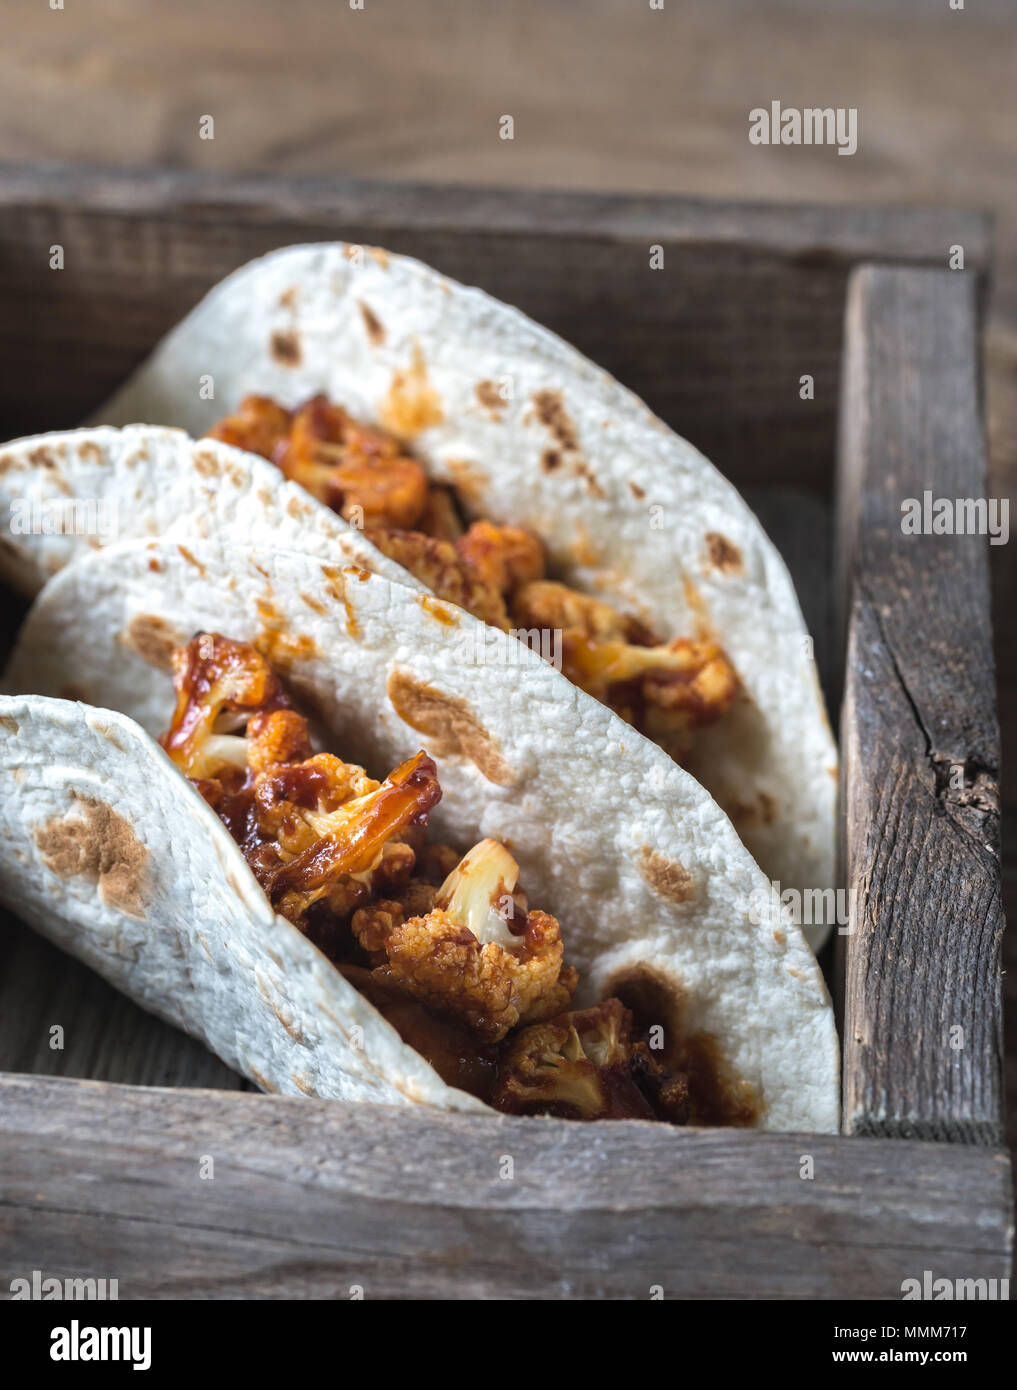 Tacos with spicy cauliflower - Stock Image